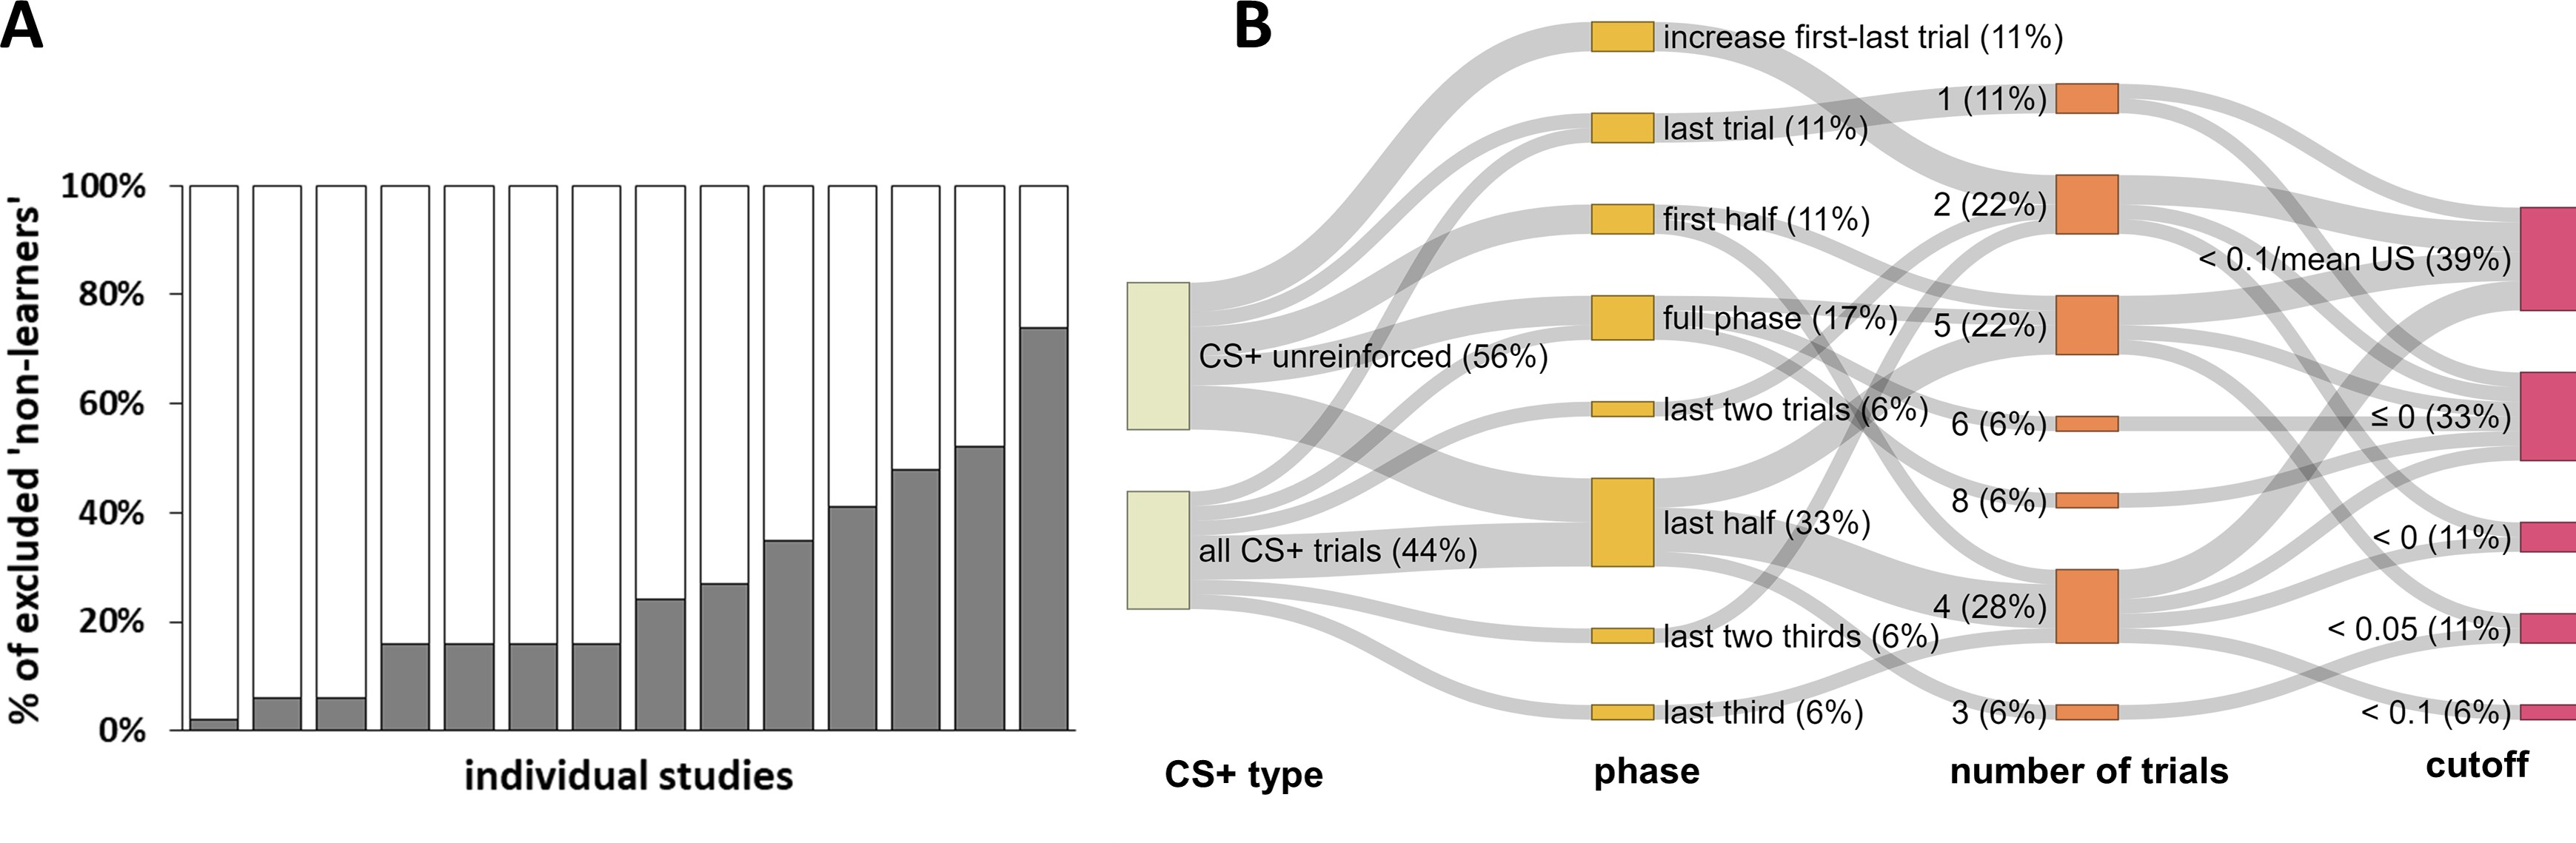 Navigating The Garden Of Forking Paths For Data Exclusions In Fear Conditioning Research Elife